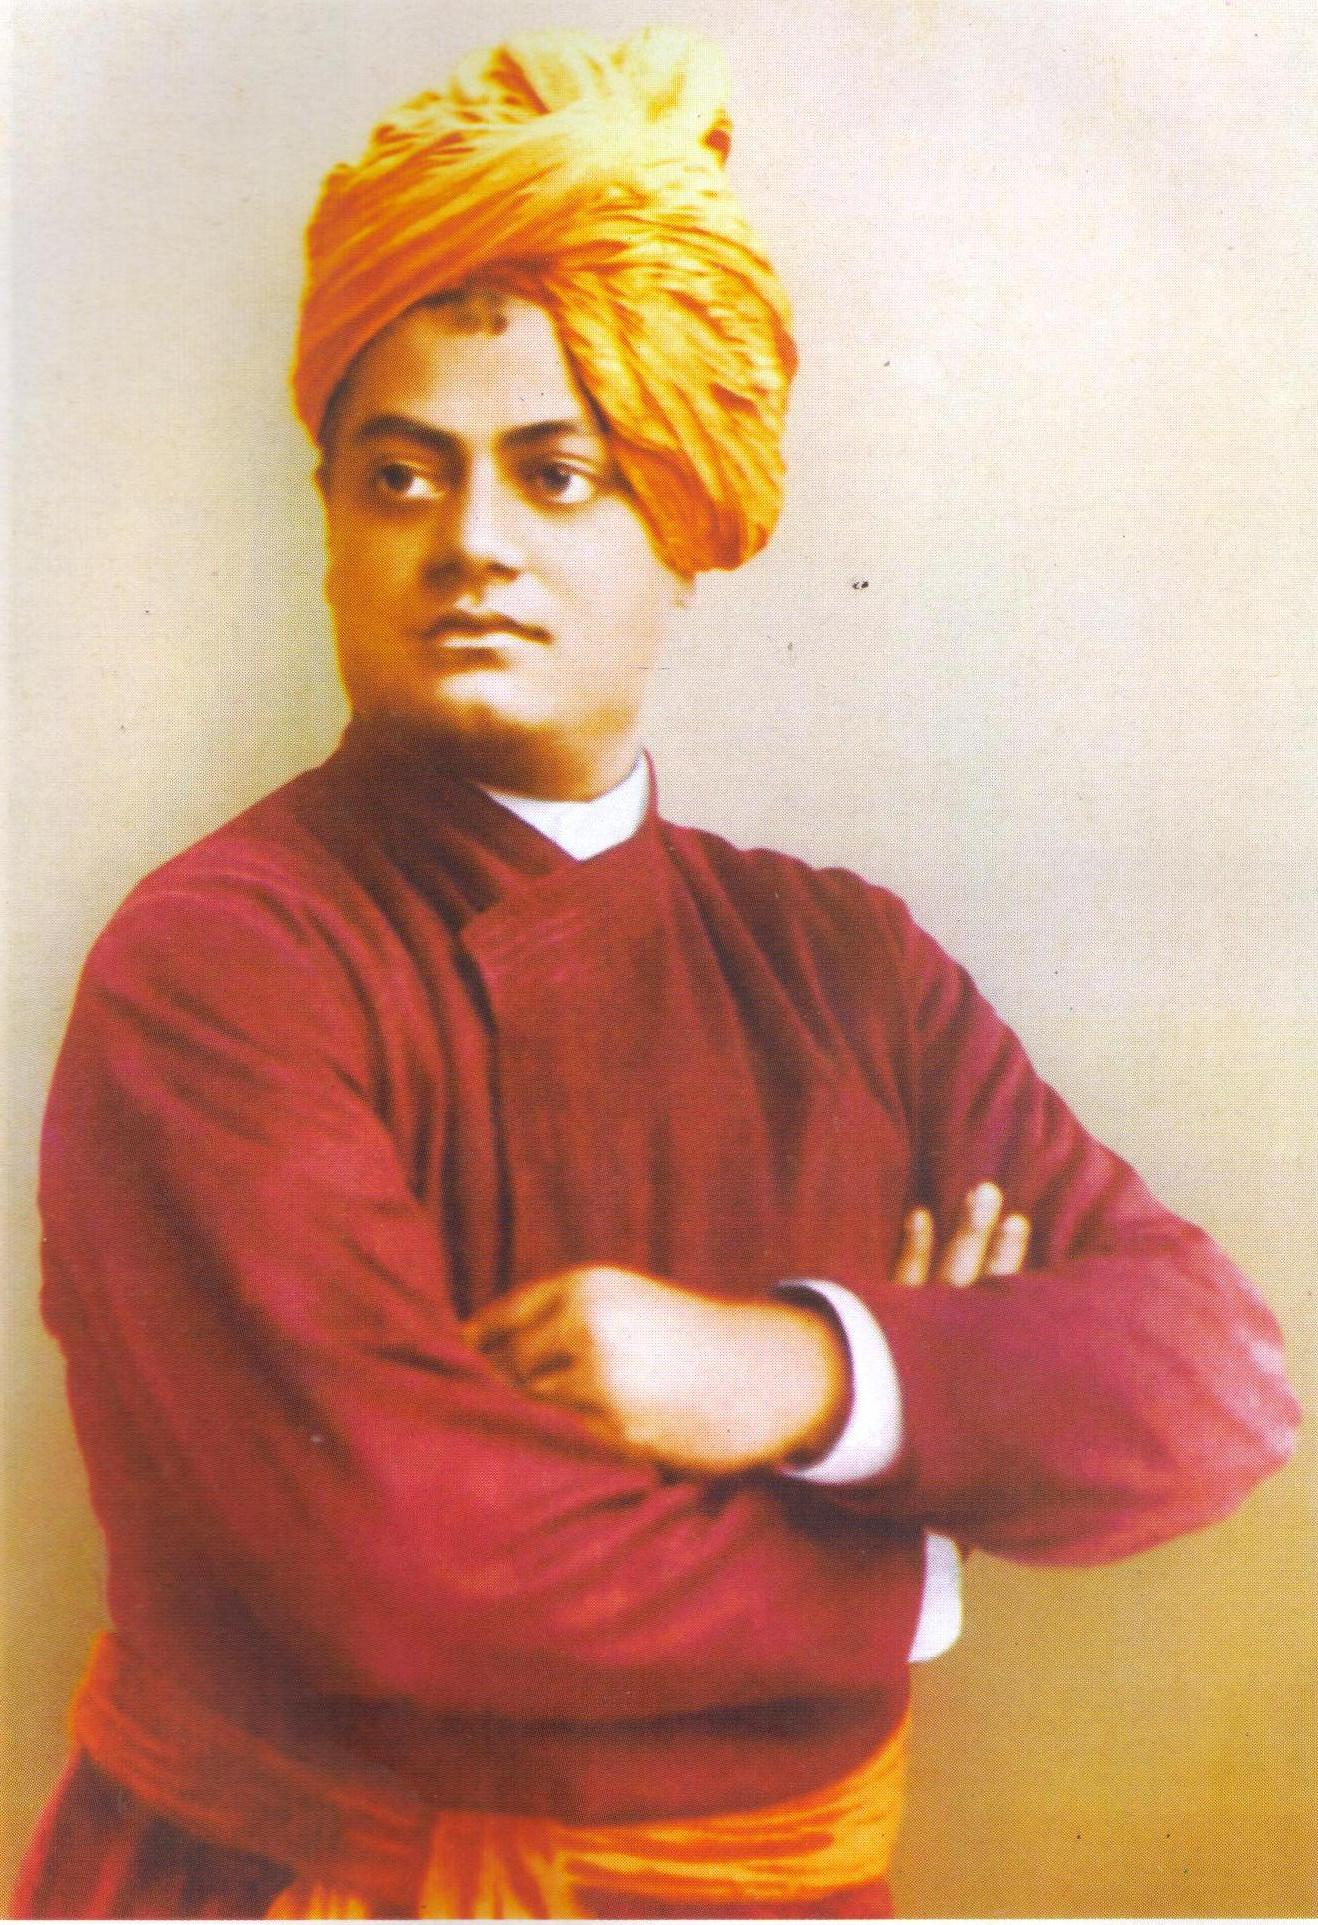 INTER-RELIGIOUS HARMONY FROM THE STANDPOINTS OF SRI RAMAKRISHNAAND SWAMI VIVEKANANDA, AND ITS RELEVANCE IN CONTEMPORARY INDIA.